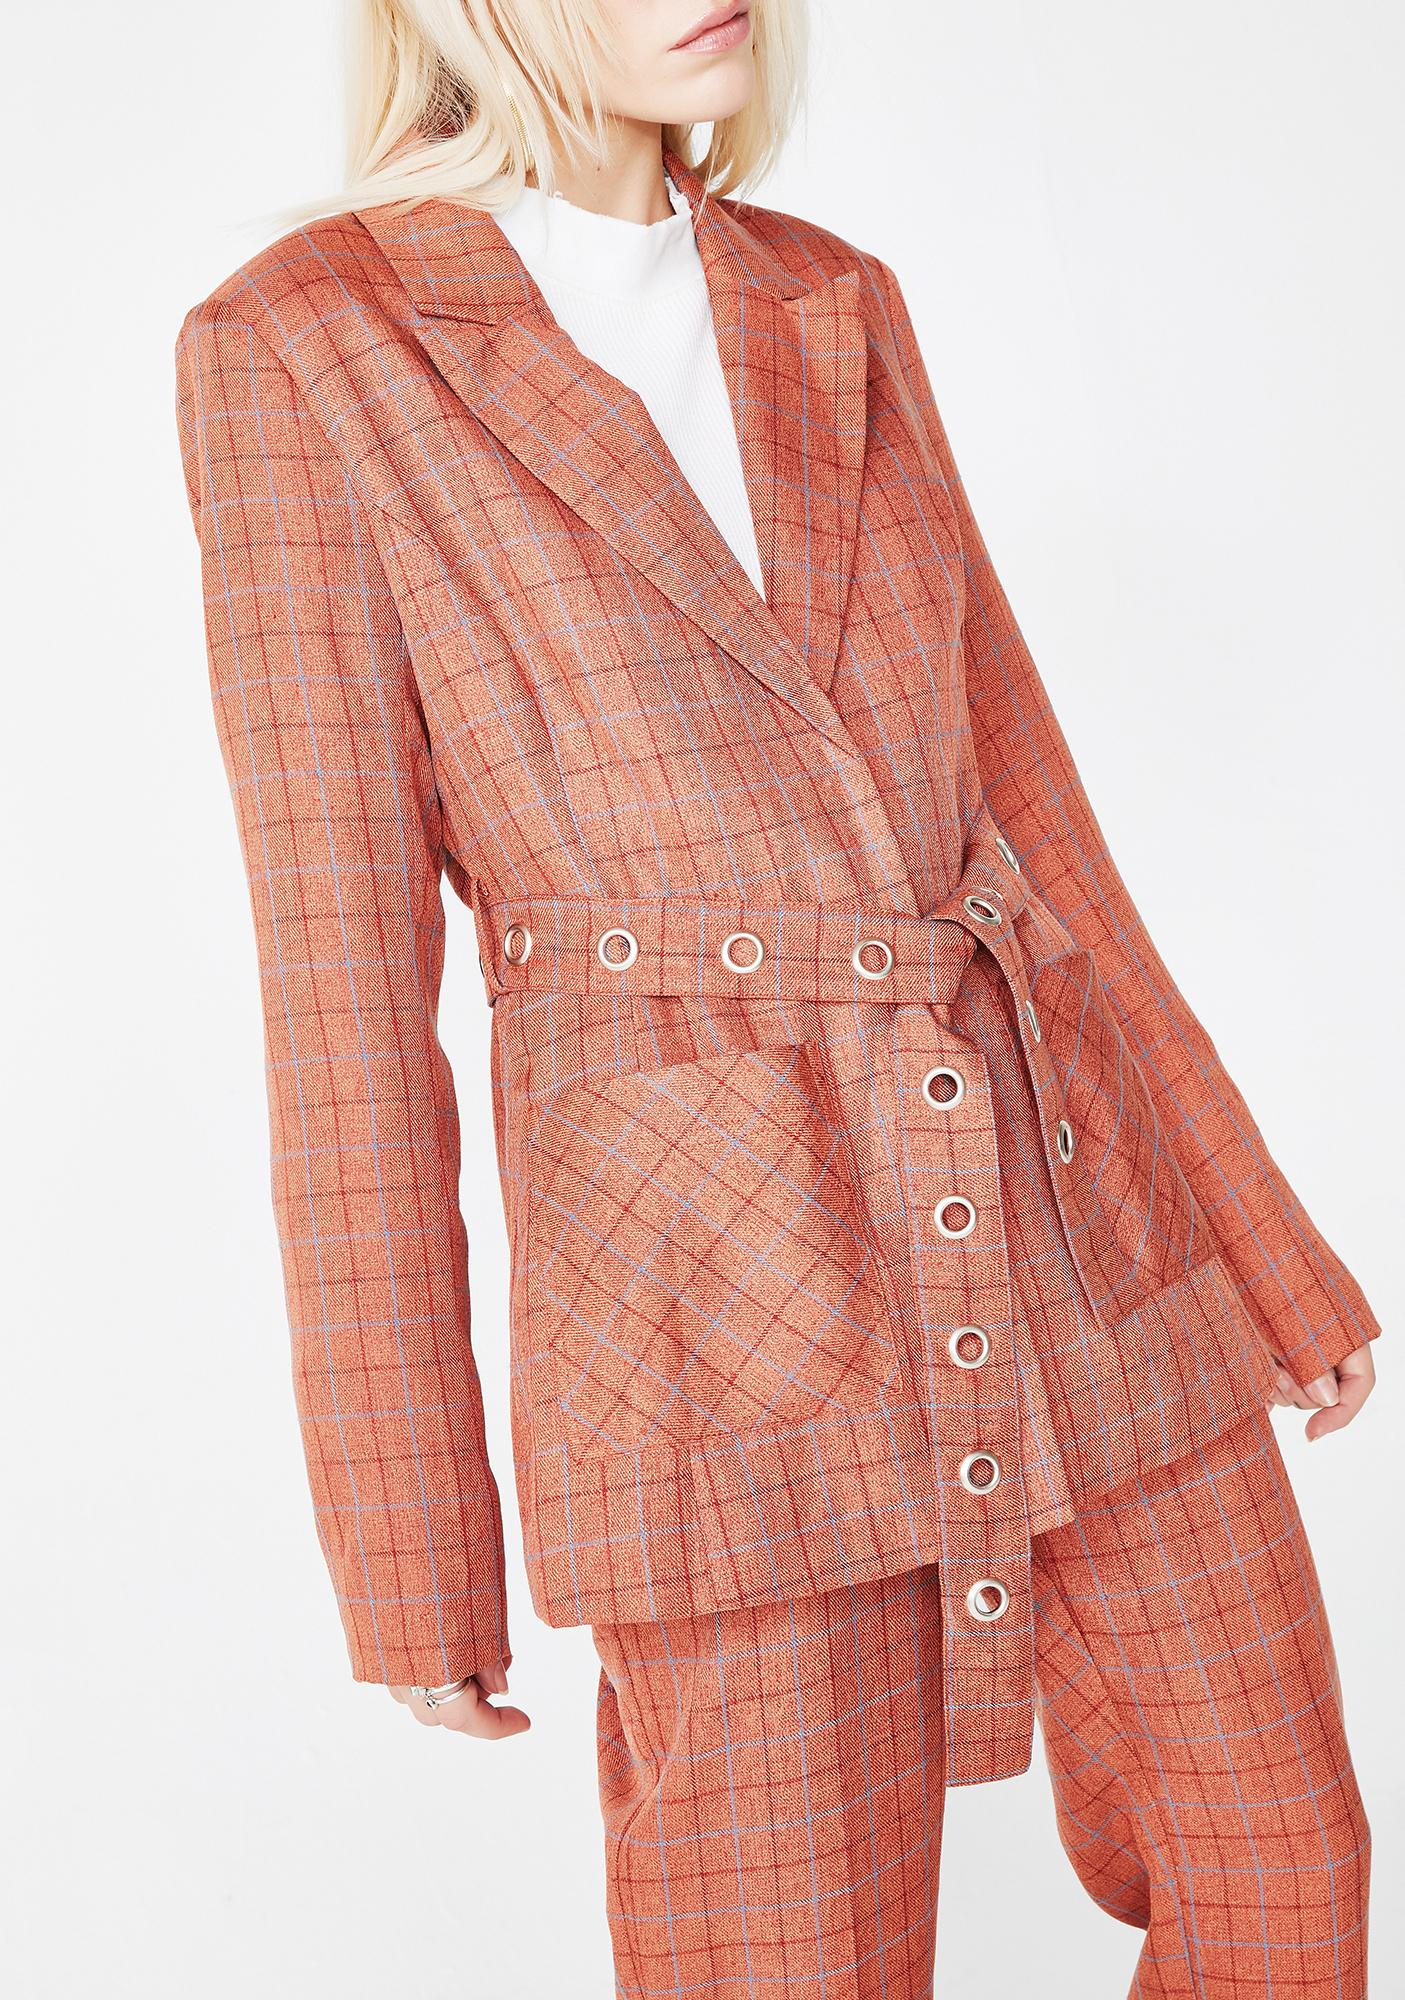 Honey Punch Dirty Business Plaid Blazer